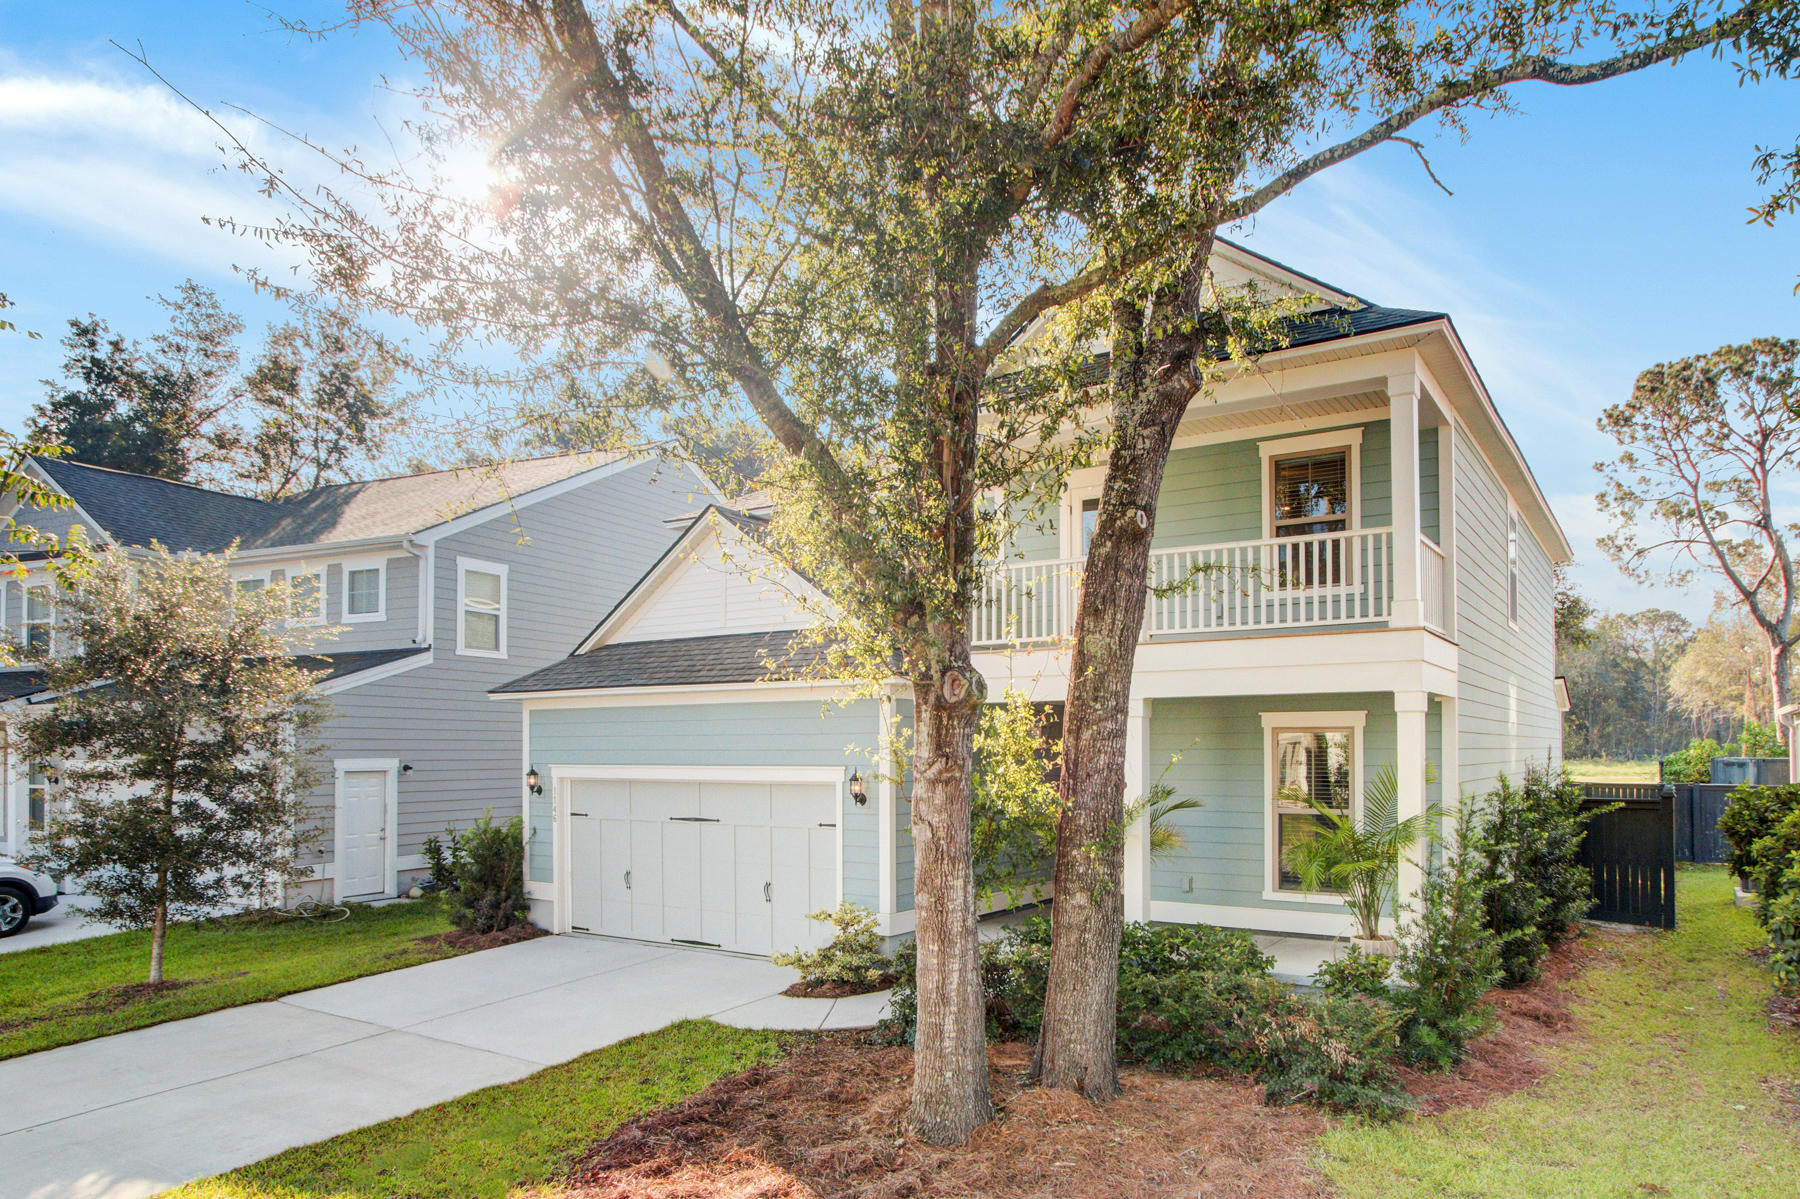 Dills Bluff Homes For Sale - 1146 Bright, Charleston, SC - 28